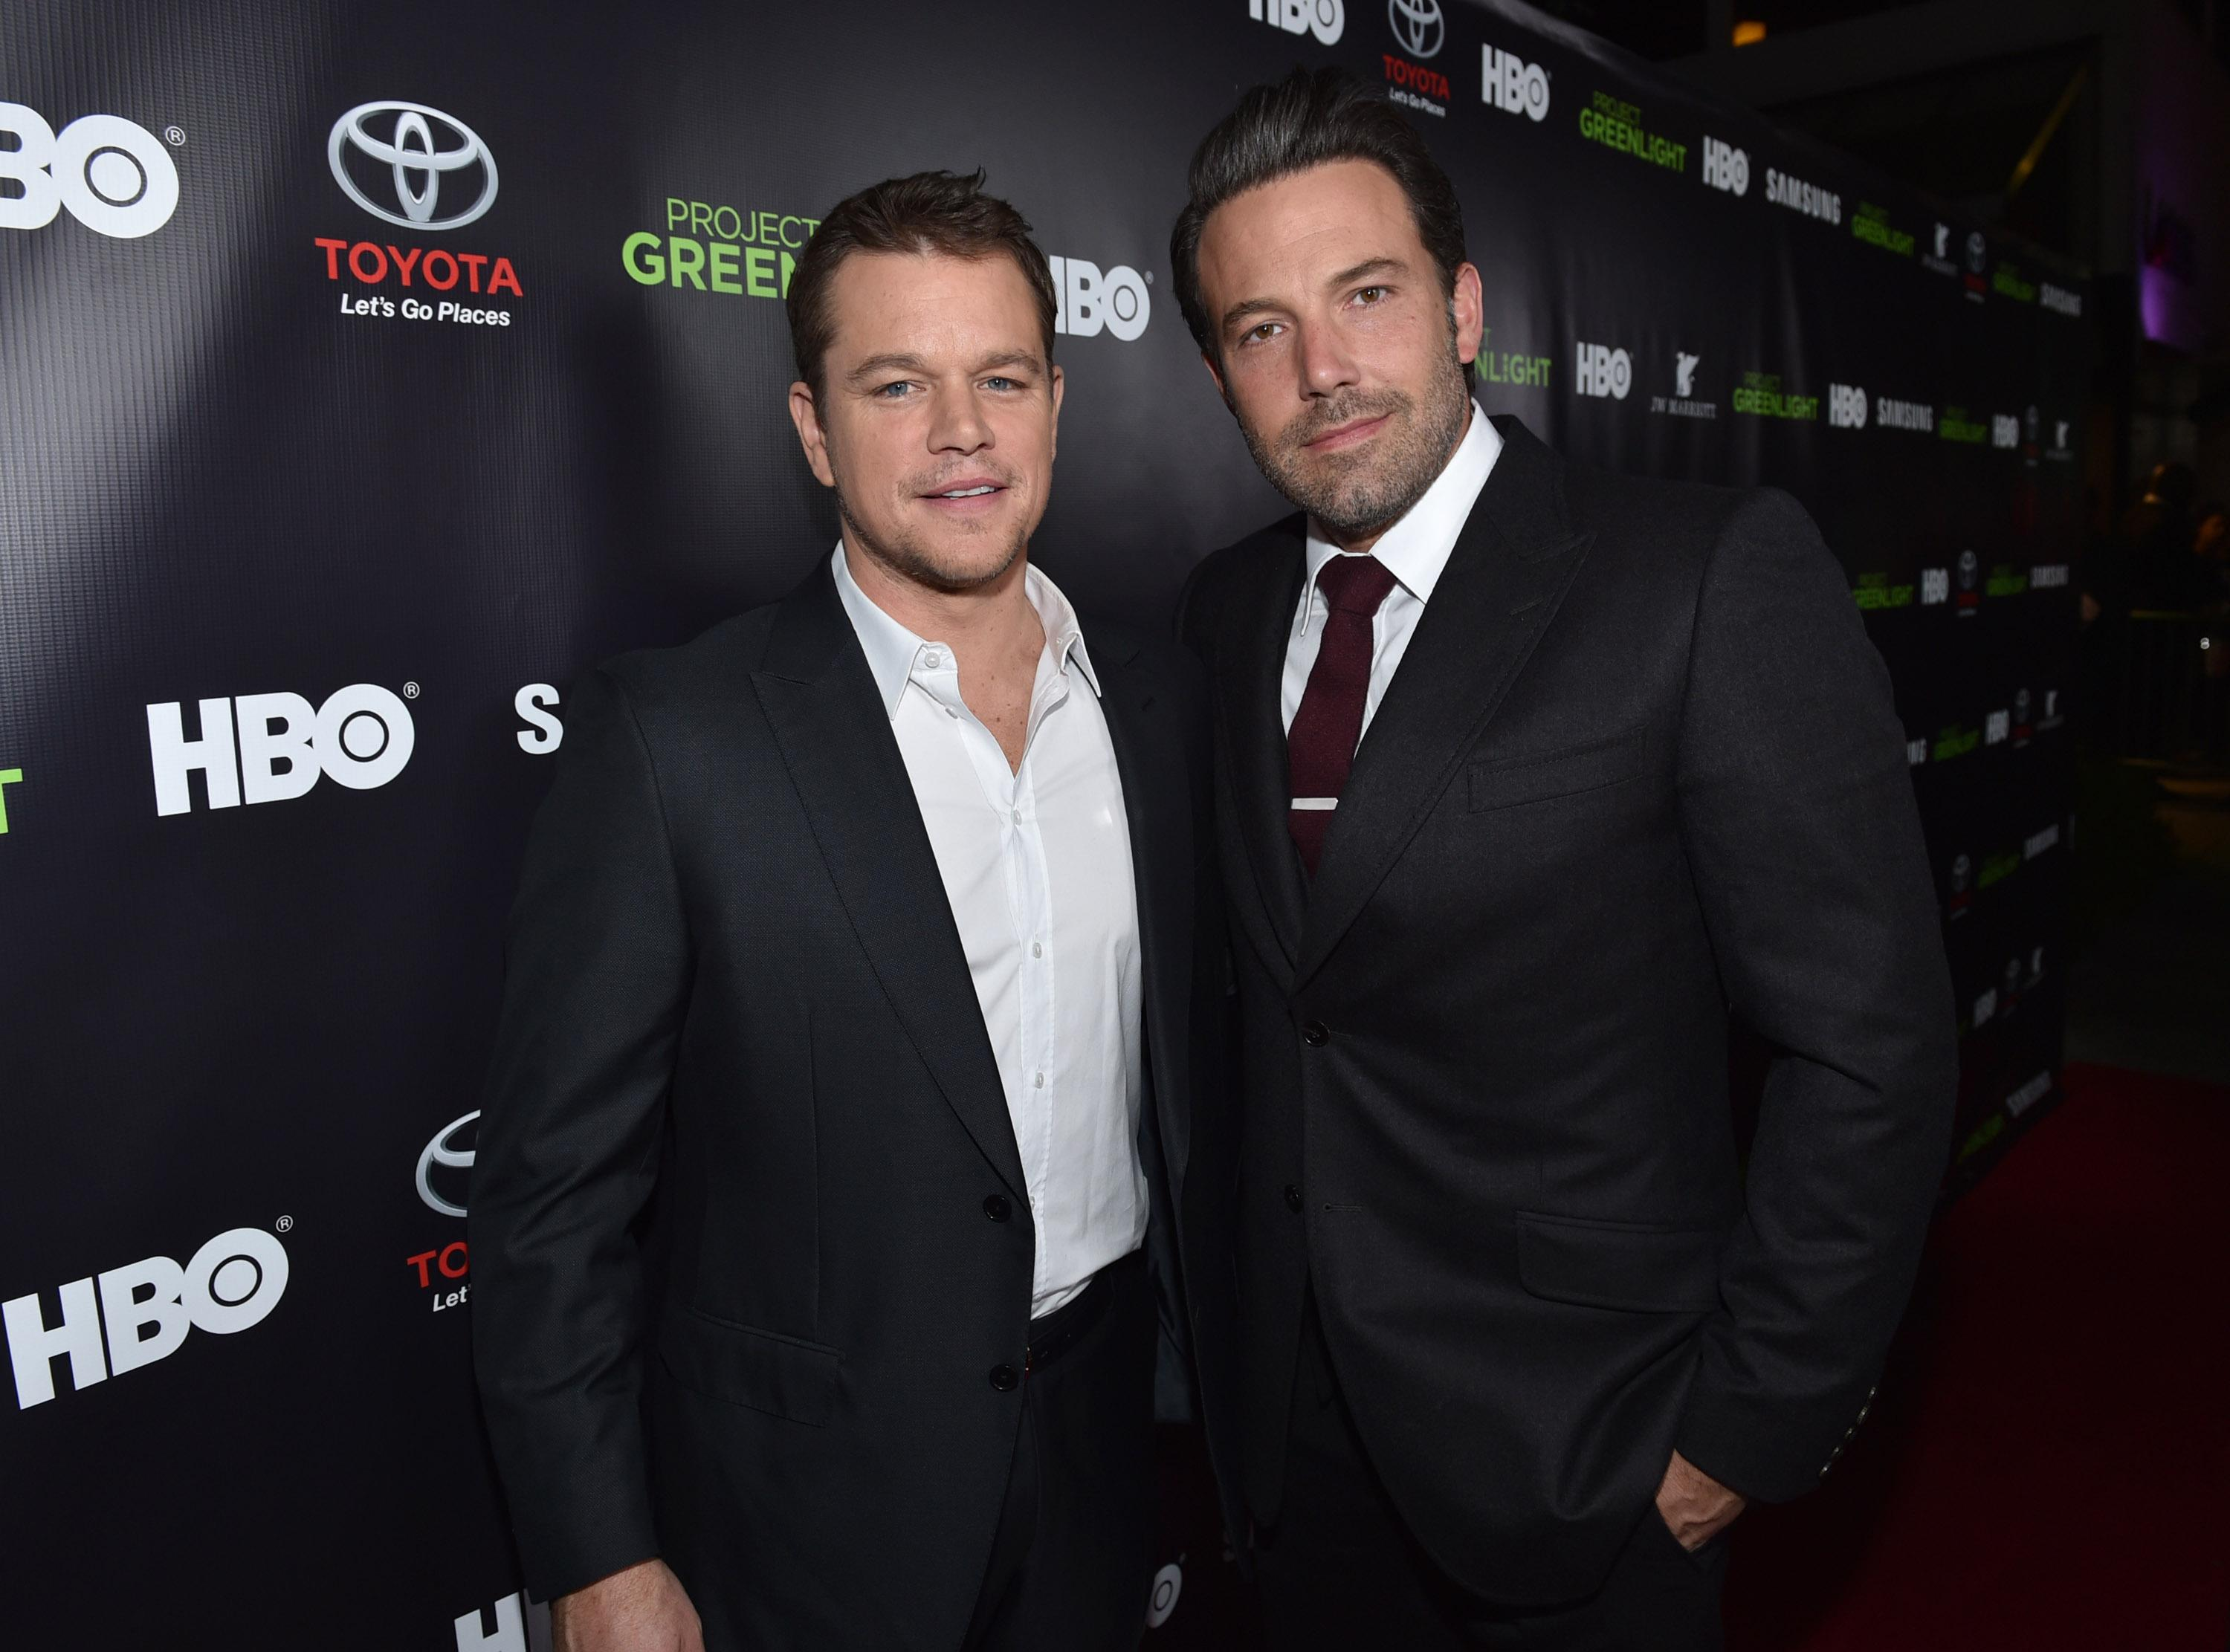 Matt Damon and Ben Affleck are seen at the HBO Project Greenlight Filmmaker Showcase on Friday, Nov. 7, 2014 in Hollywood, Calif. (Photo by John Shearer/Invision for HBO/AP Images)